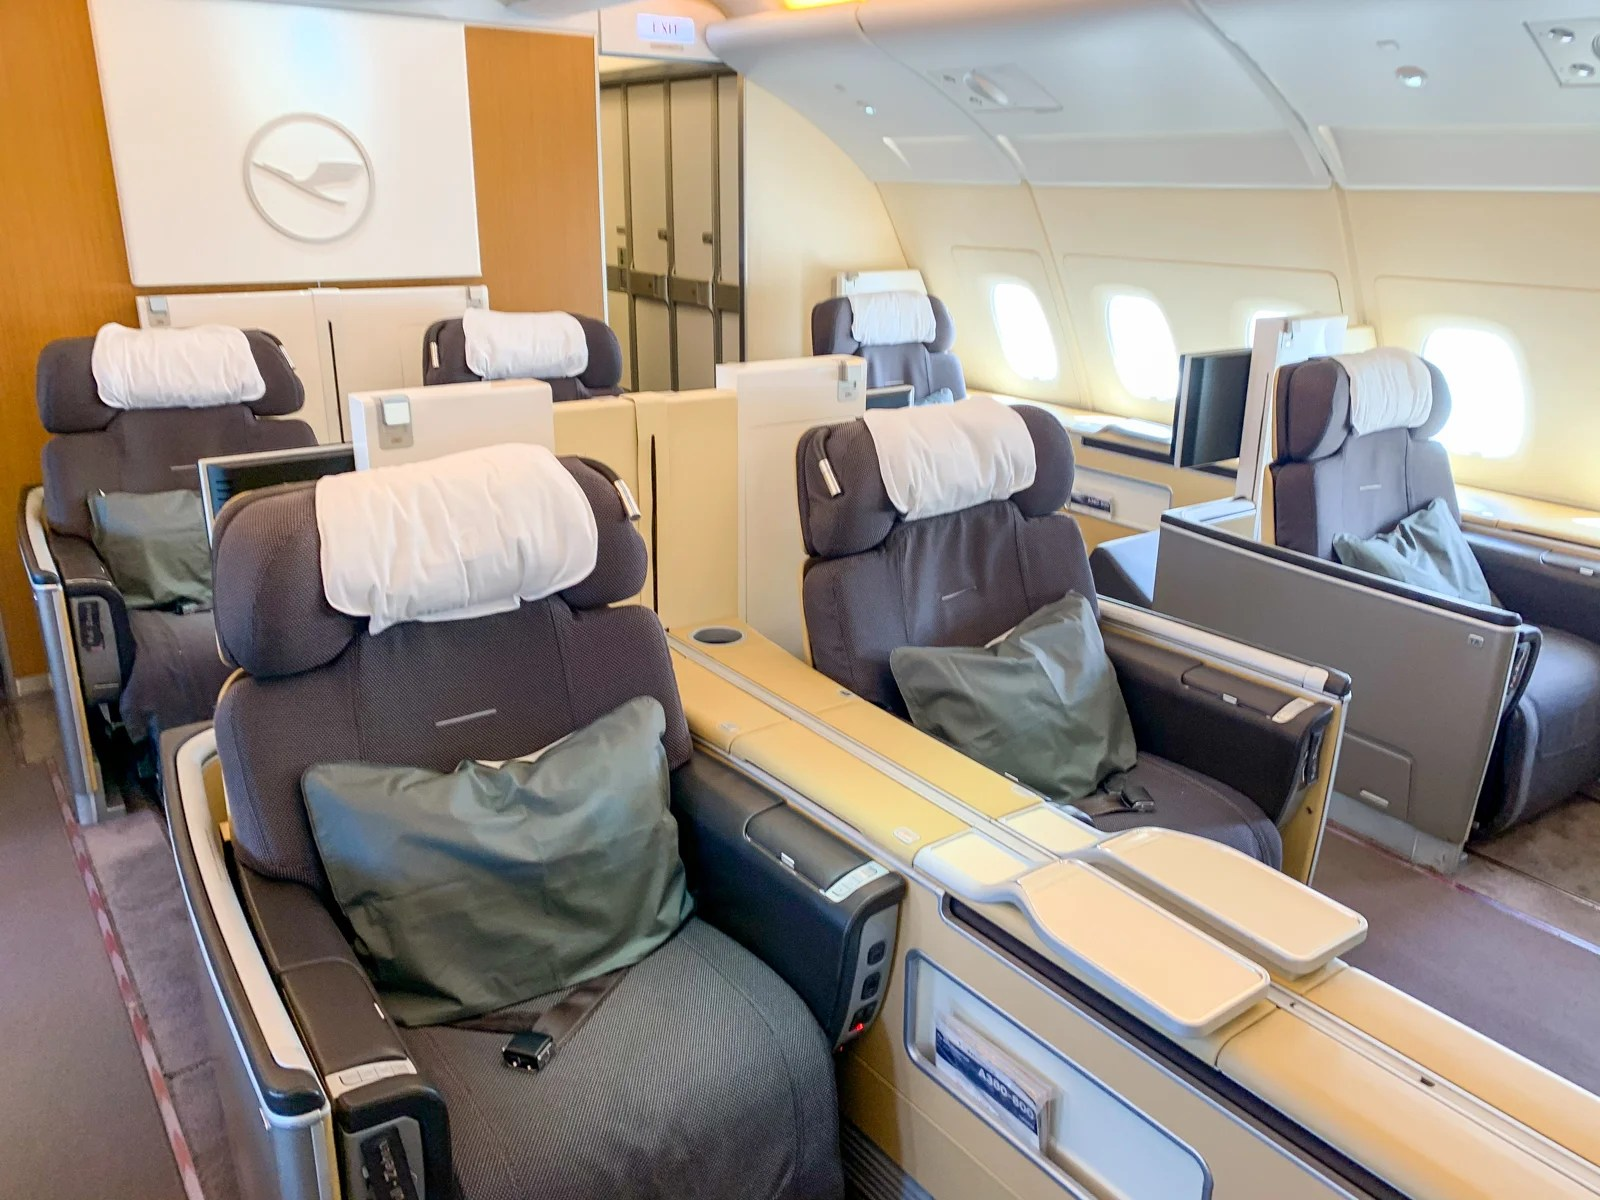 I'm still in love: A review of Lufthansa first class on the A380